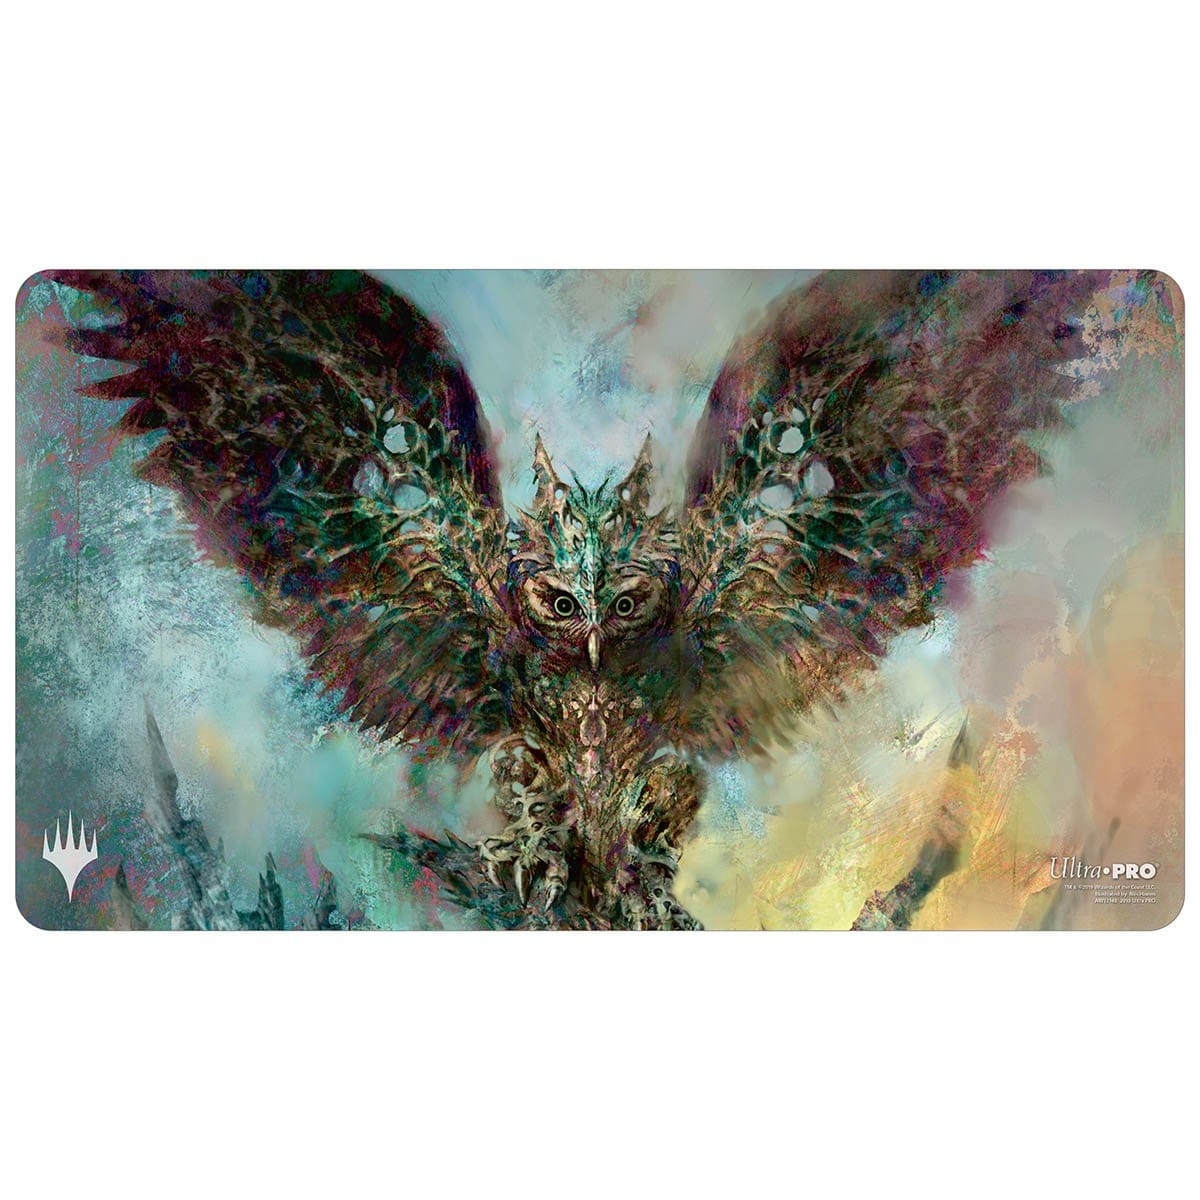 Baleful Strix Playmat - Playmat - Original Magic Art - Accessories for Magic the Gathering and other card games